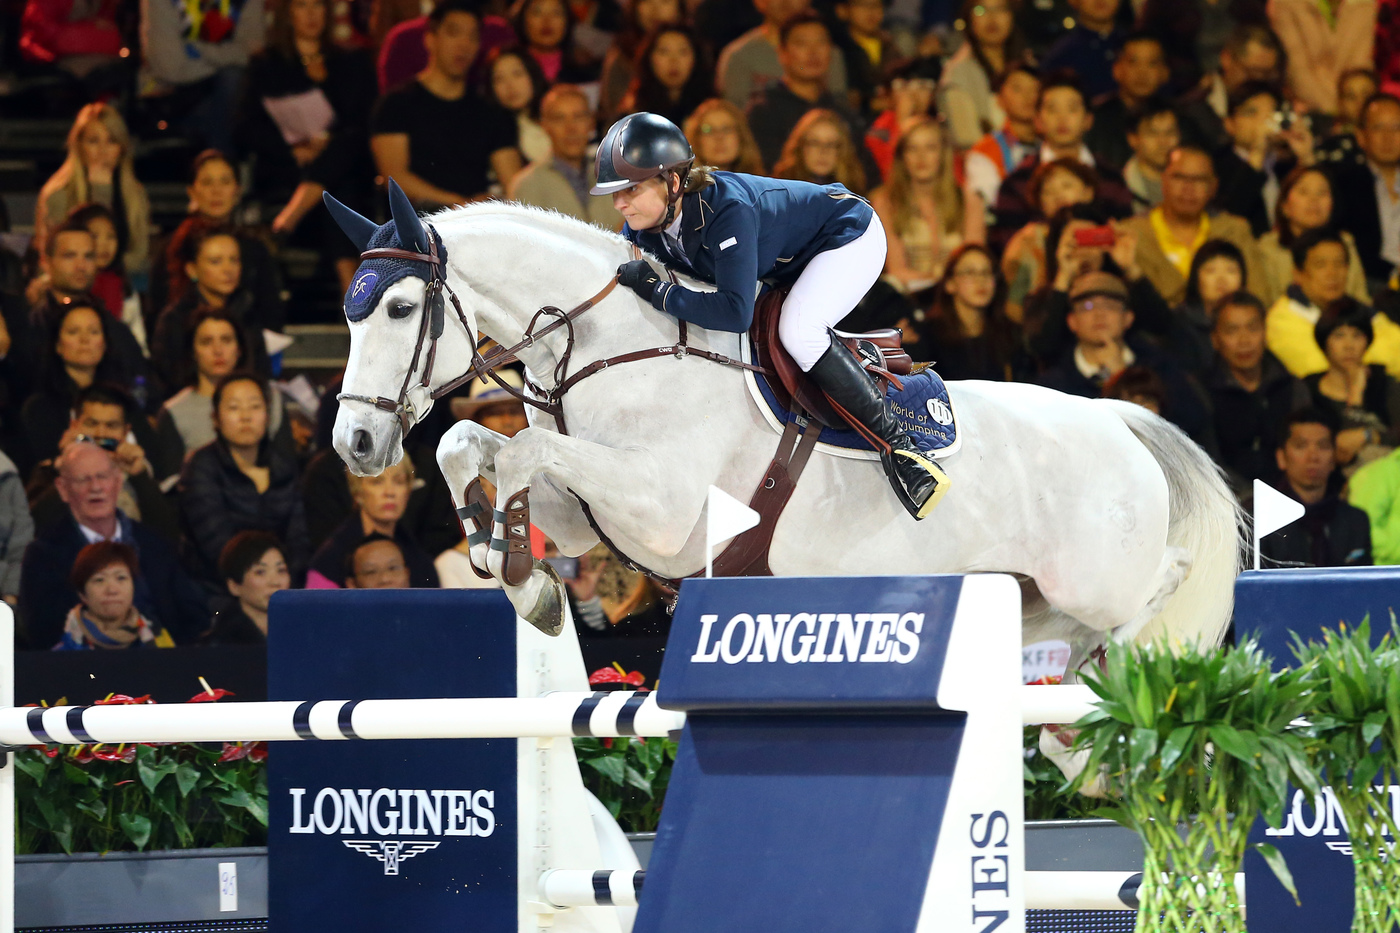 Longines Show Jumping Event: Brilliant moments at the Longines Hong Kong Masters 2014 11